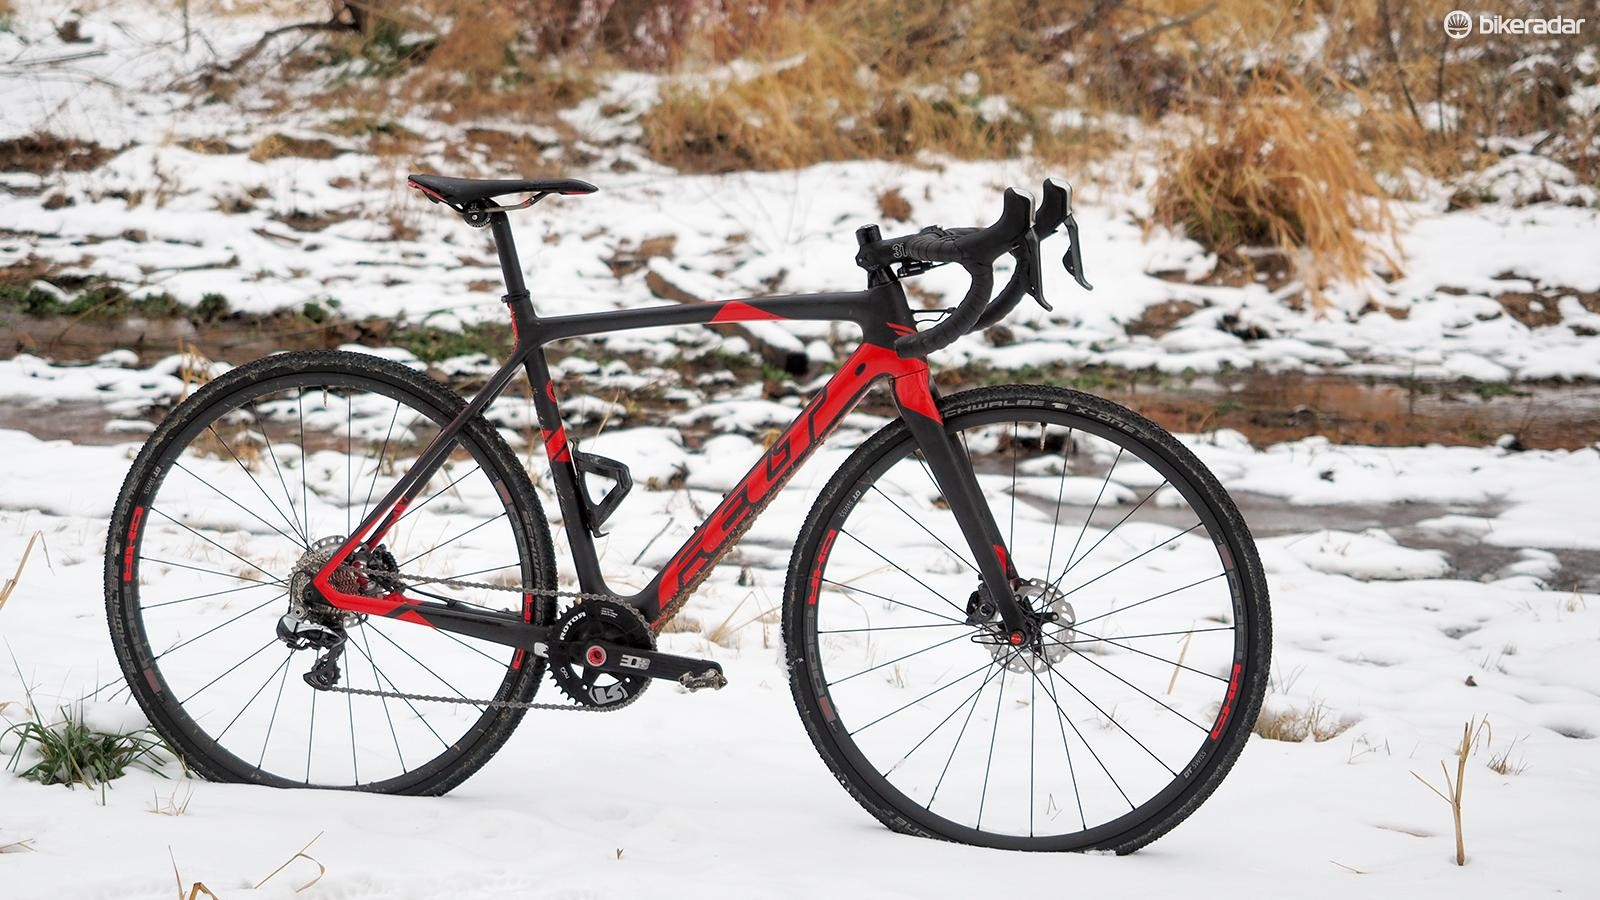 The Felt F1x Di2 is an absolute race rocket, combining incredible stiffness and efficiency with a surprisingly smooth ride